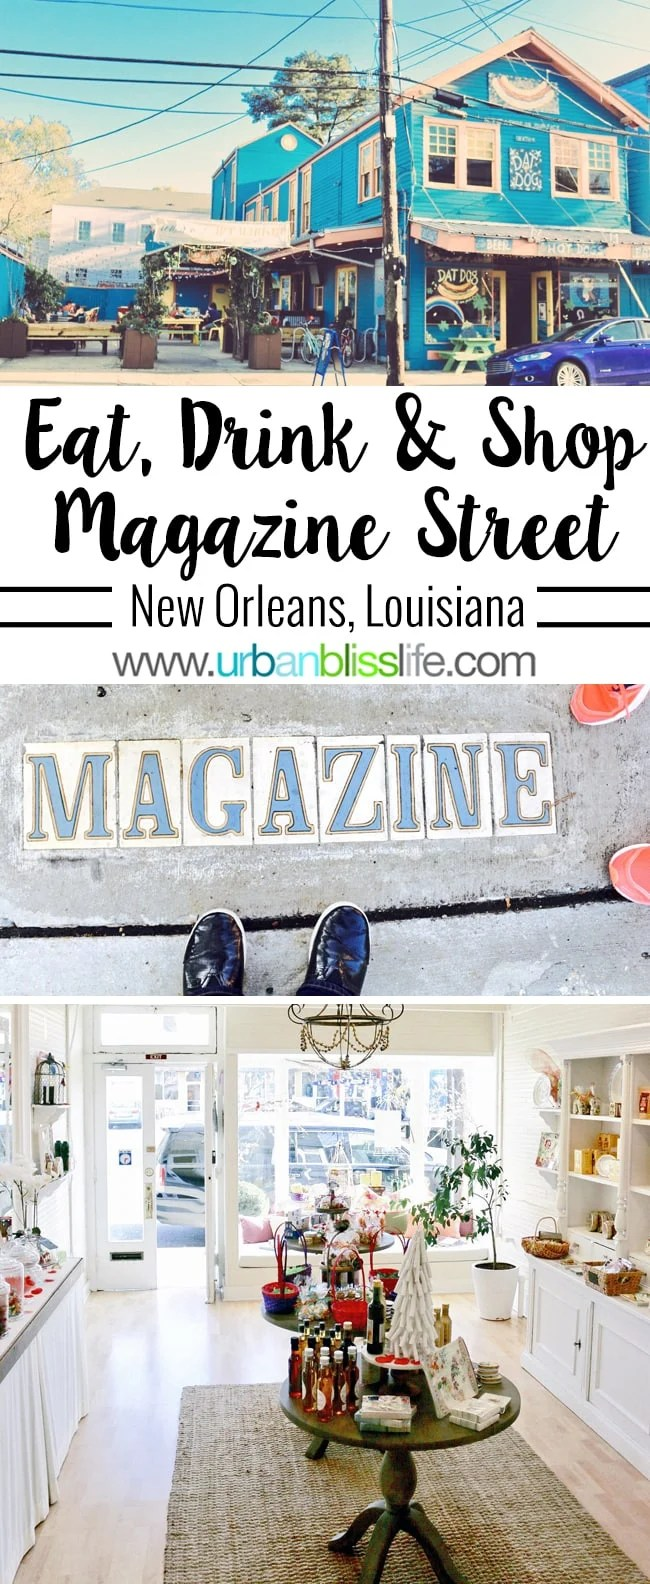 Shoes Magazine Street New Orleans